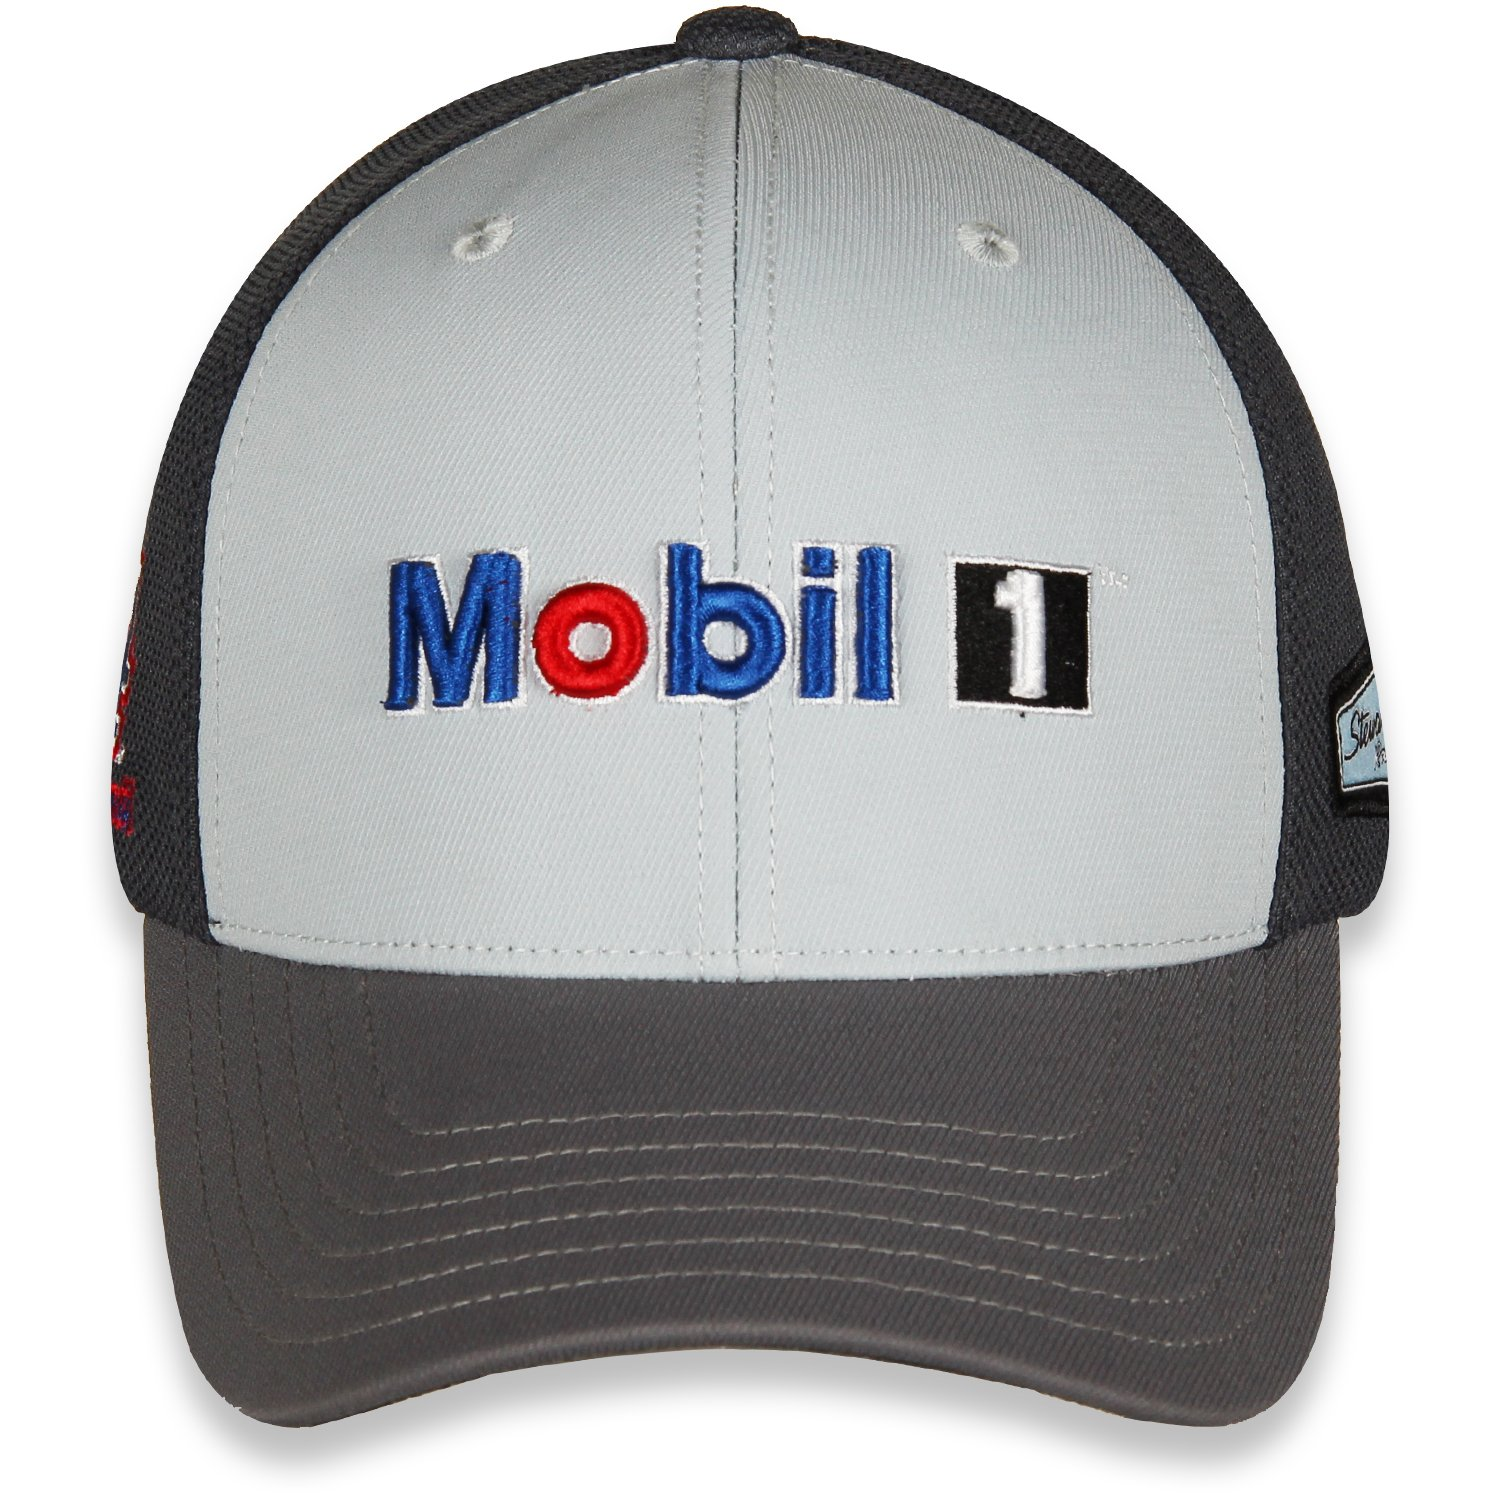 Kevin Harvick 2020 Mobil 1 Stewart-Haas Racing Dynamic Hat